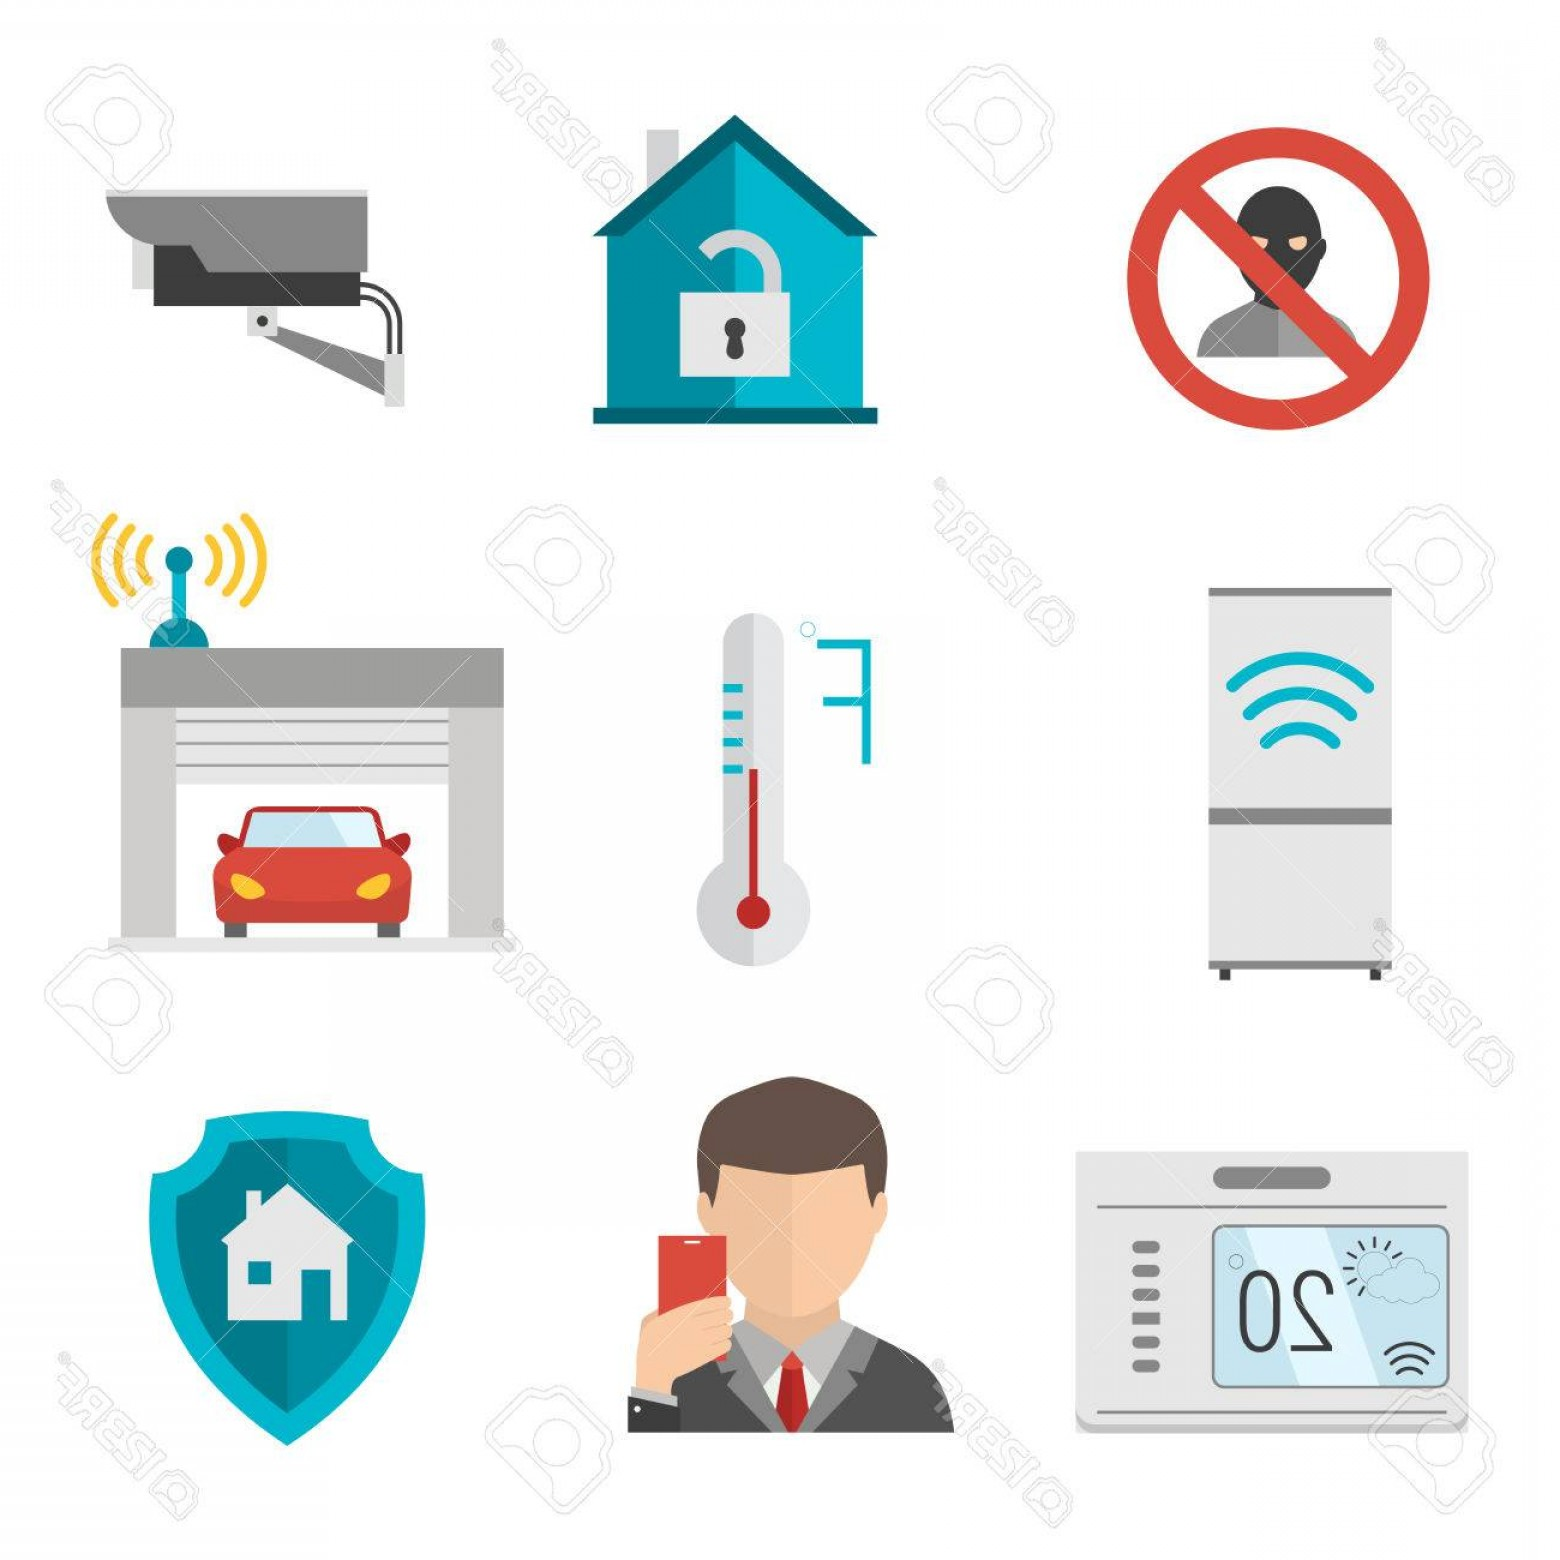 Smart Home Remote Vector: Photostock Vector Remote Home Control System Smart House Vector Illustration Smart House Remote Control Smart House Ic